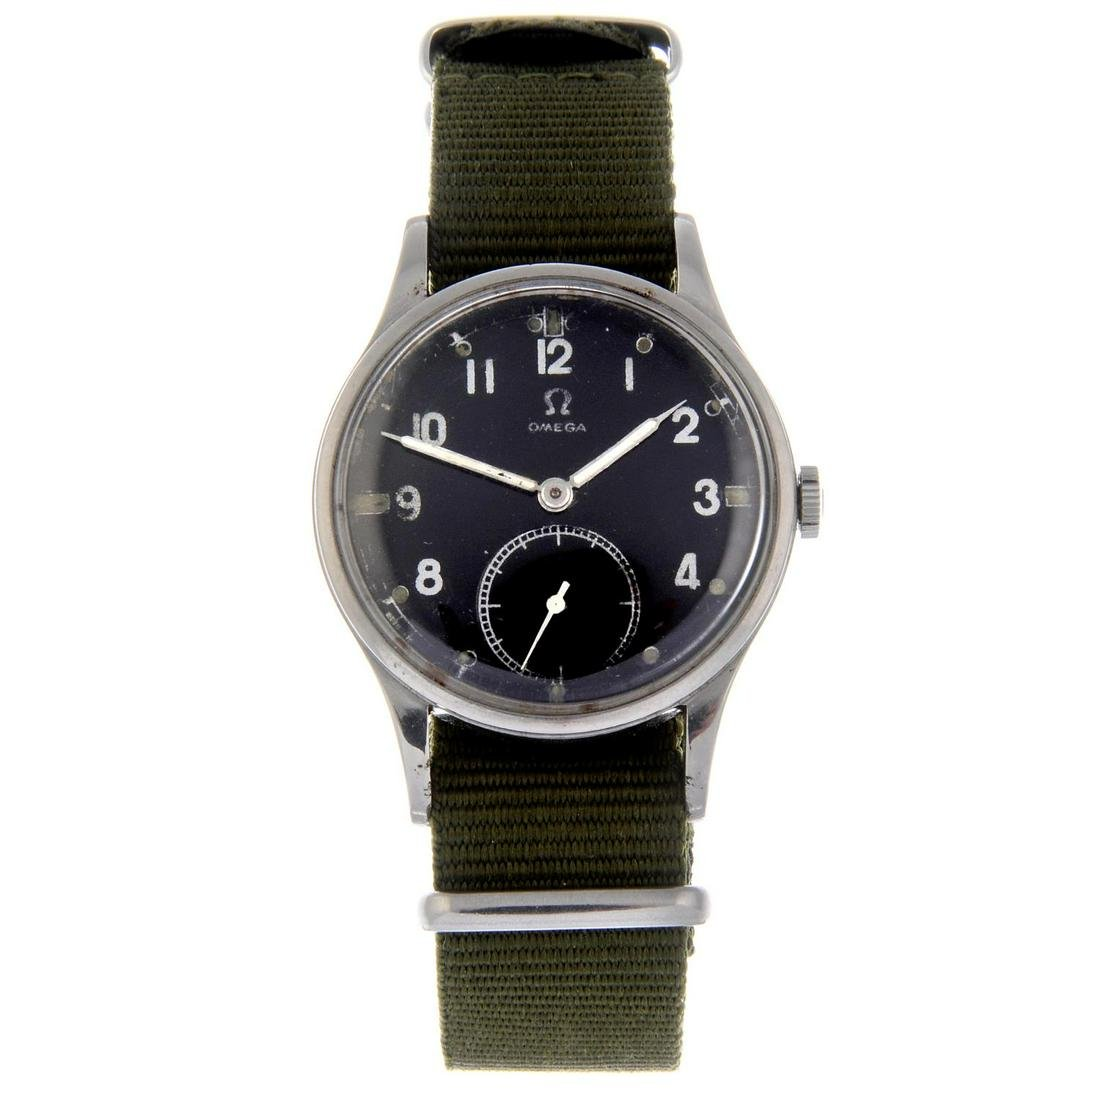 OMEGA - a military issue wrist watch. Stainless steel